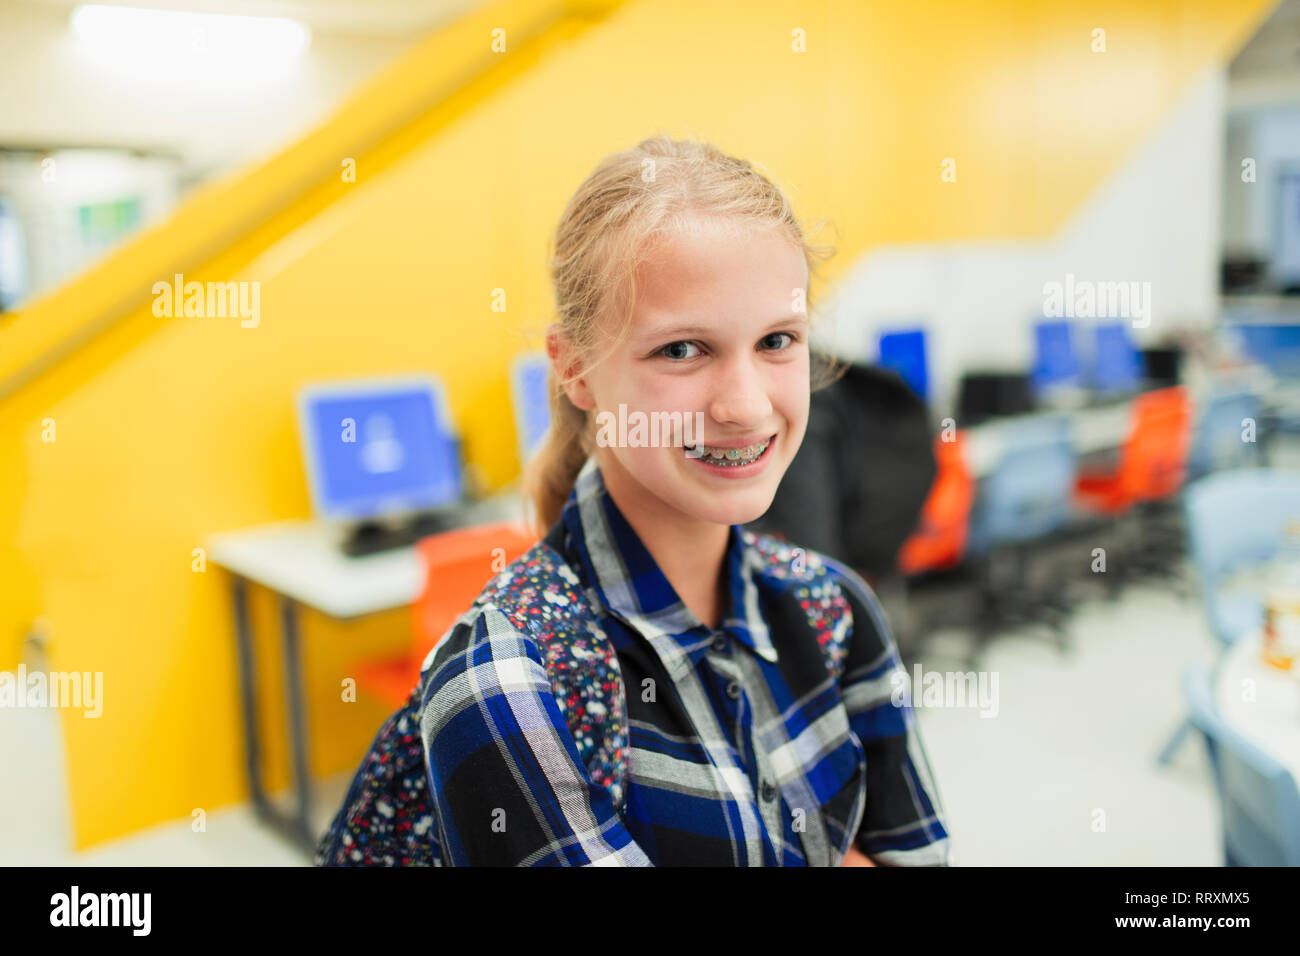 Portrait confident junior high girl student with braces Stock Photo